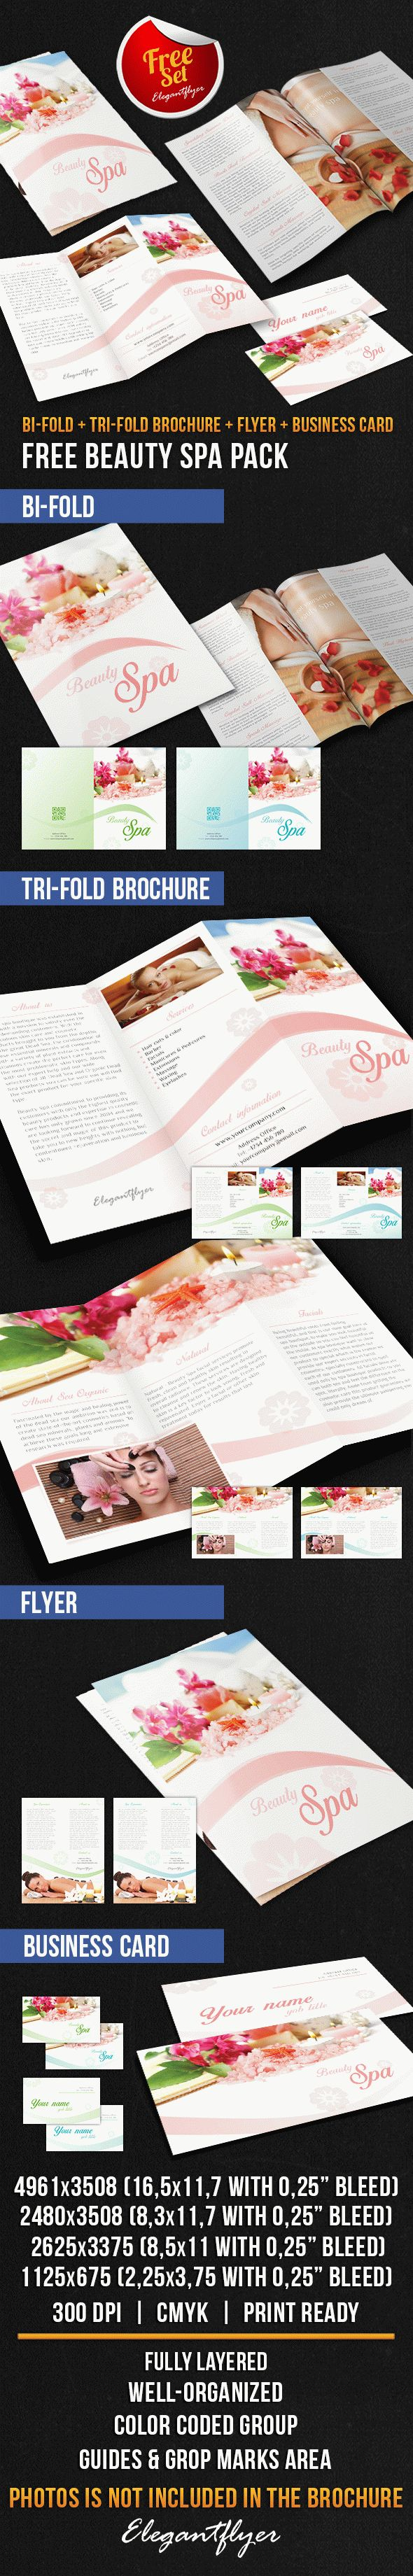 Beauty Spa Brochure Pack – Free PSD Template